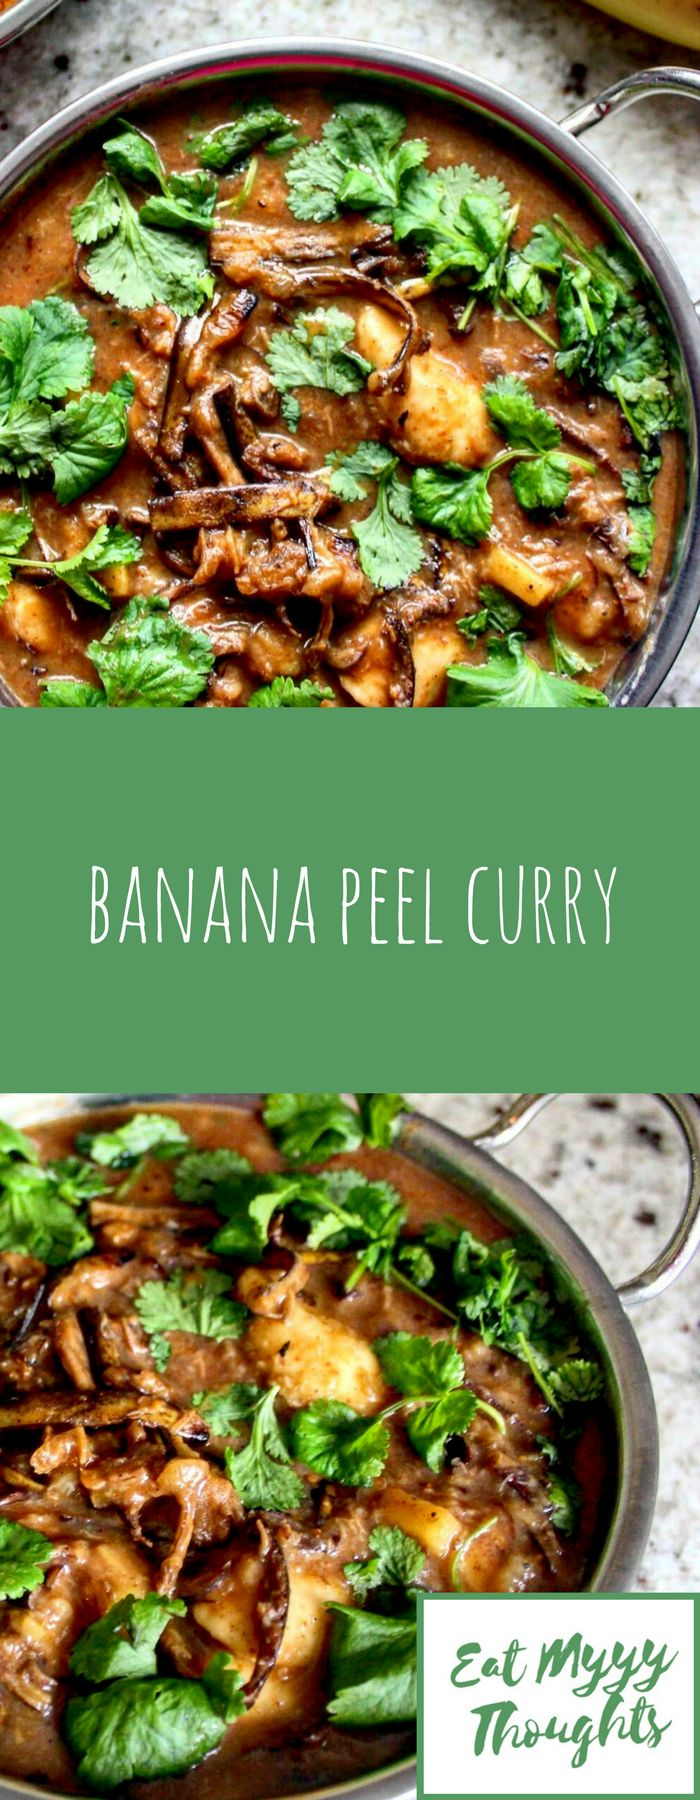 No, I haven't lost my mind! You can eat banana skins! This banana peel curry is a great recipe to reduce food waste. And it tastes amazing!